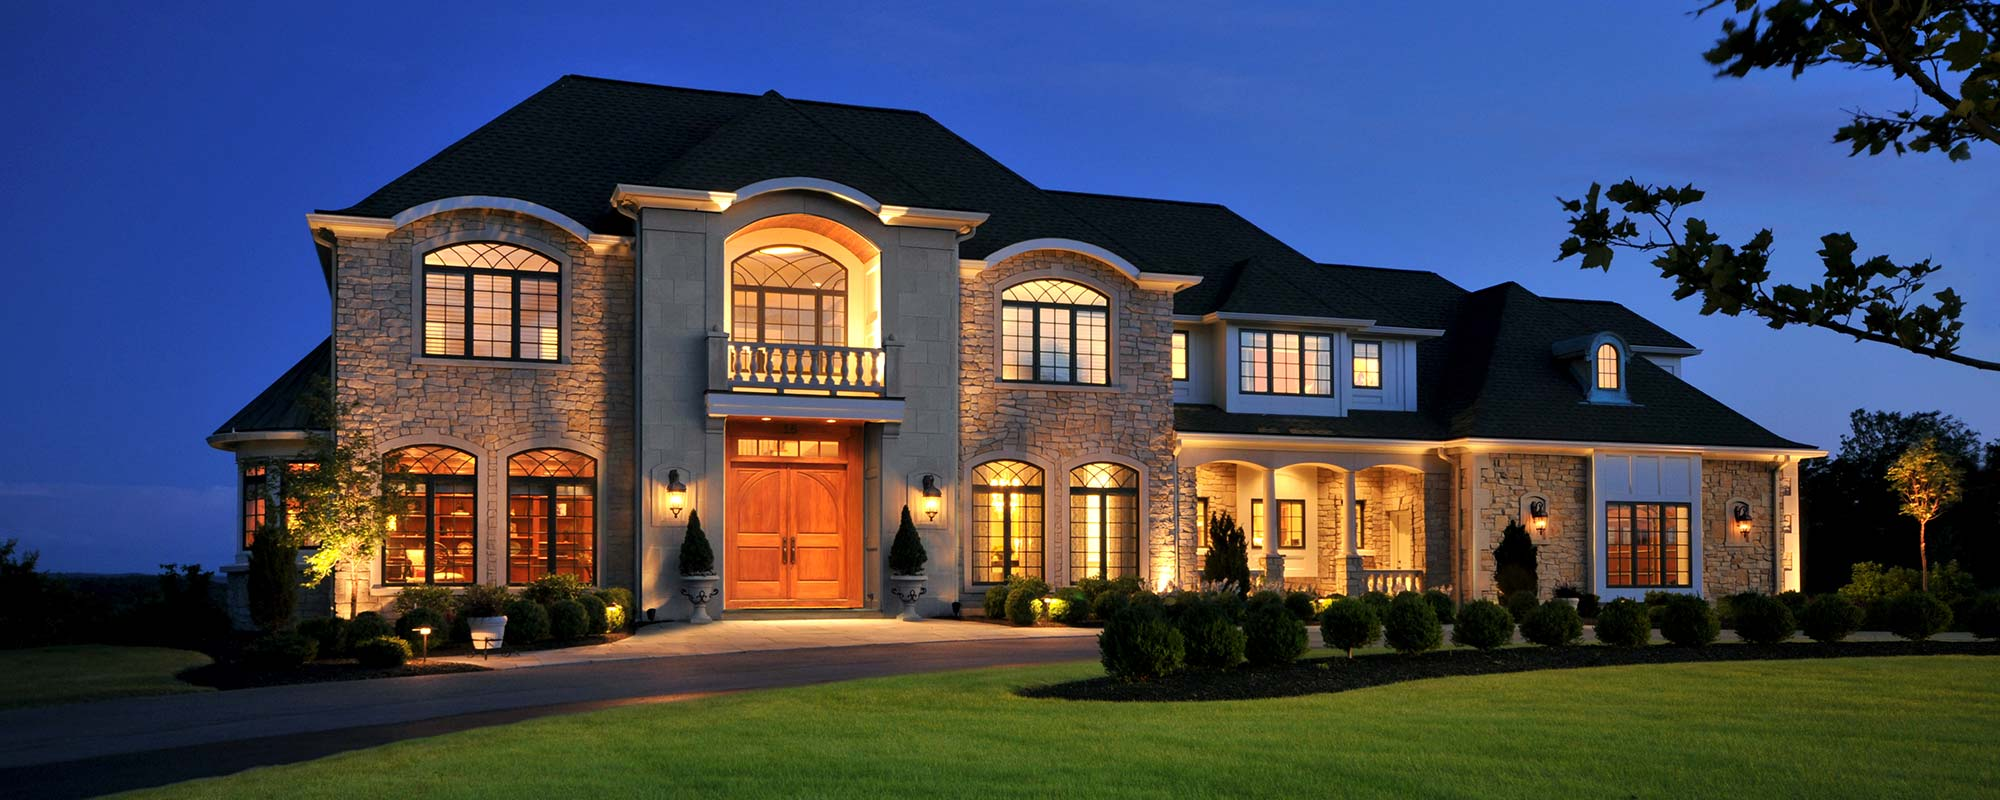 Ketmar home. Front view of a large house lit with many interior and exterior lights